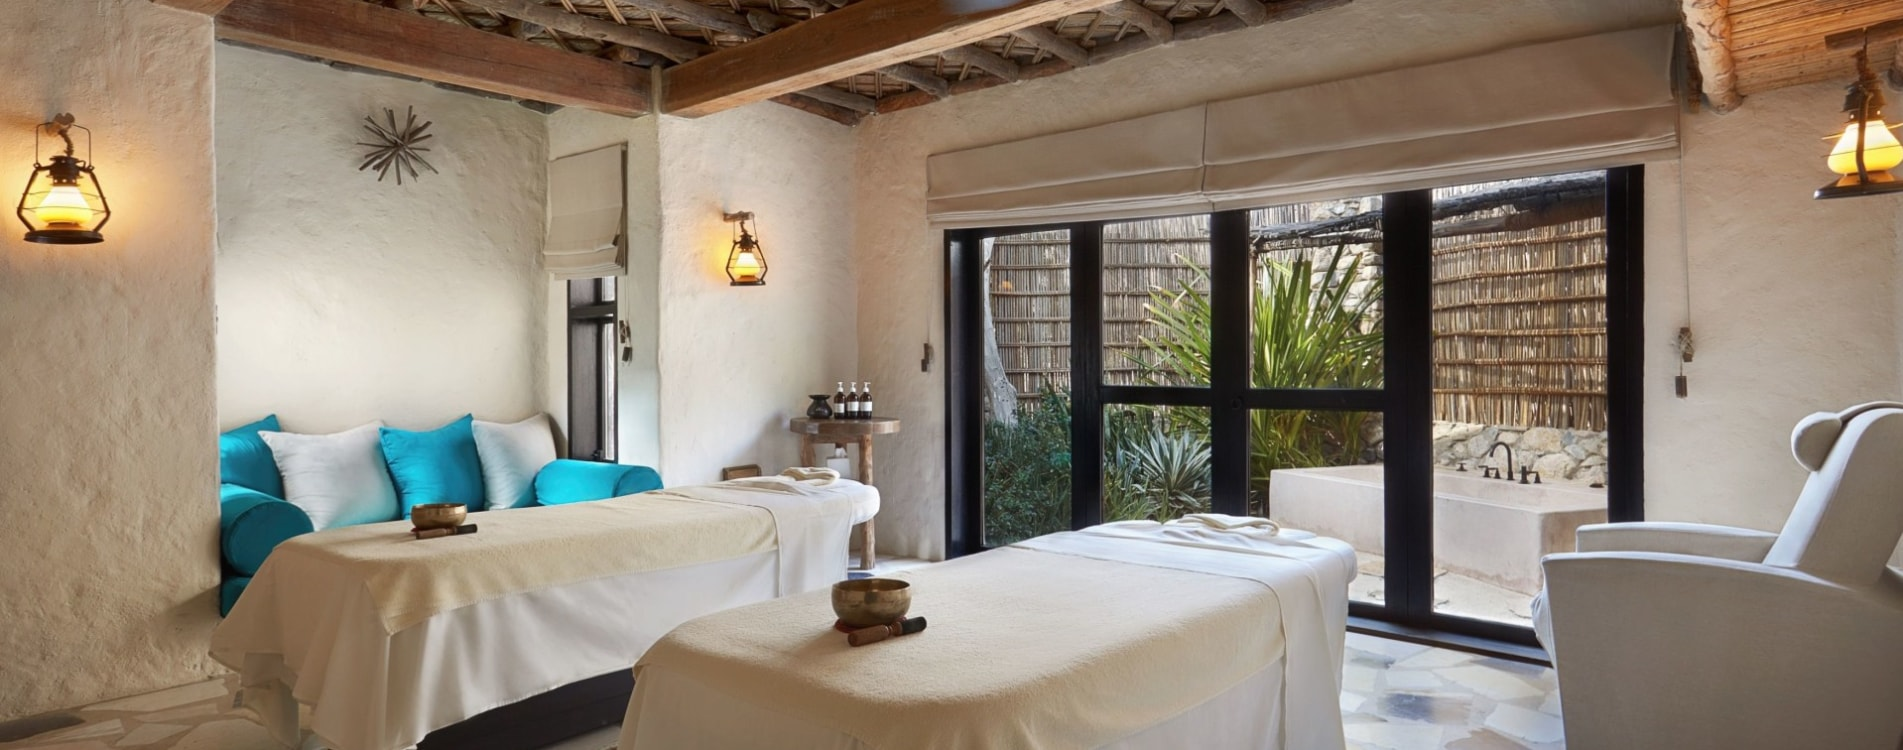 Six-Senses-Zighy-Bay-Spa-Behandlungszimmer-Massage-Oman.jpg